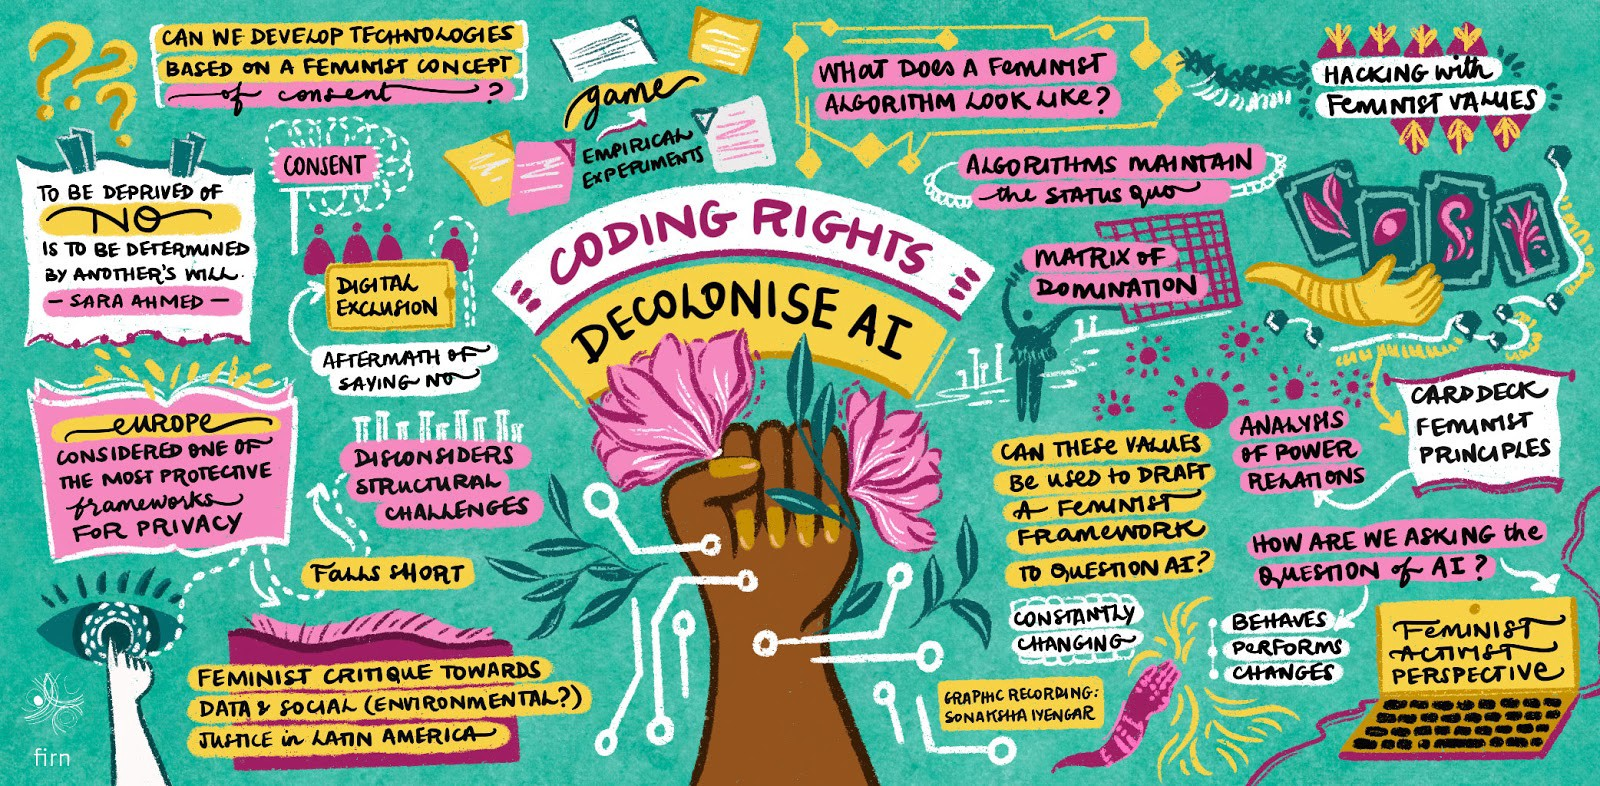 A brown fist holding flowers. Above: Coding Rights, Decolonise AI. All around: text and element documentation.